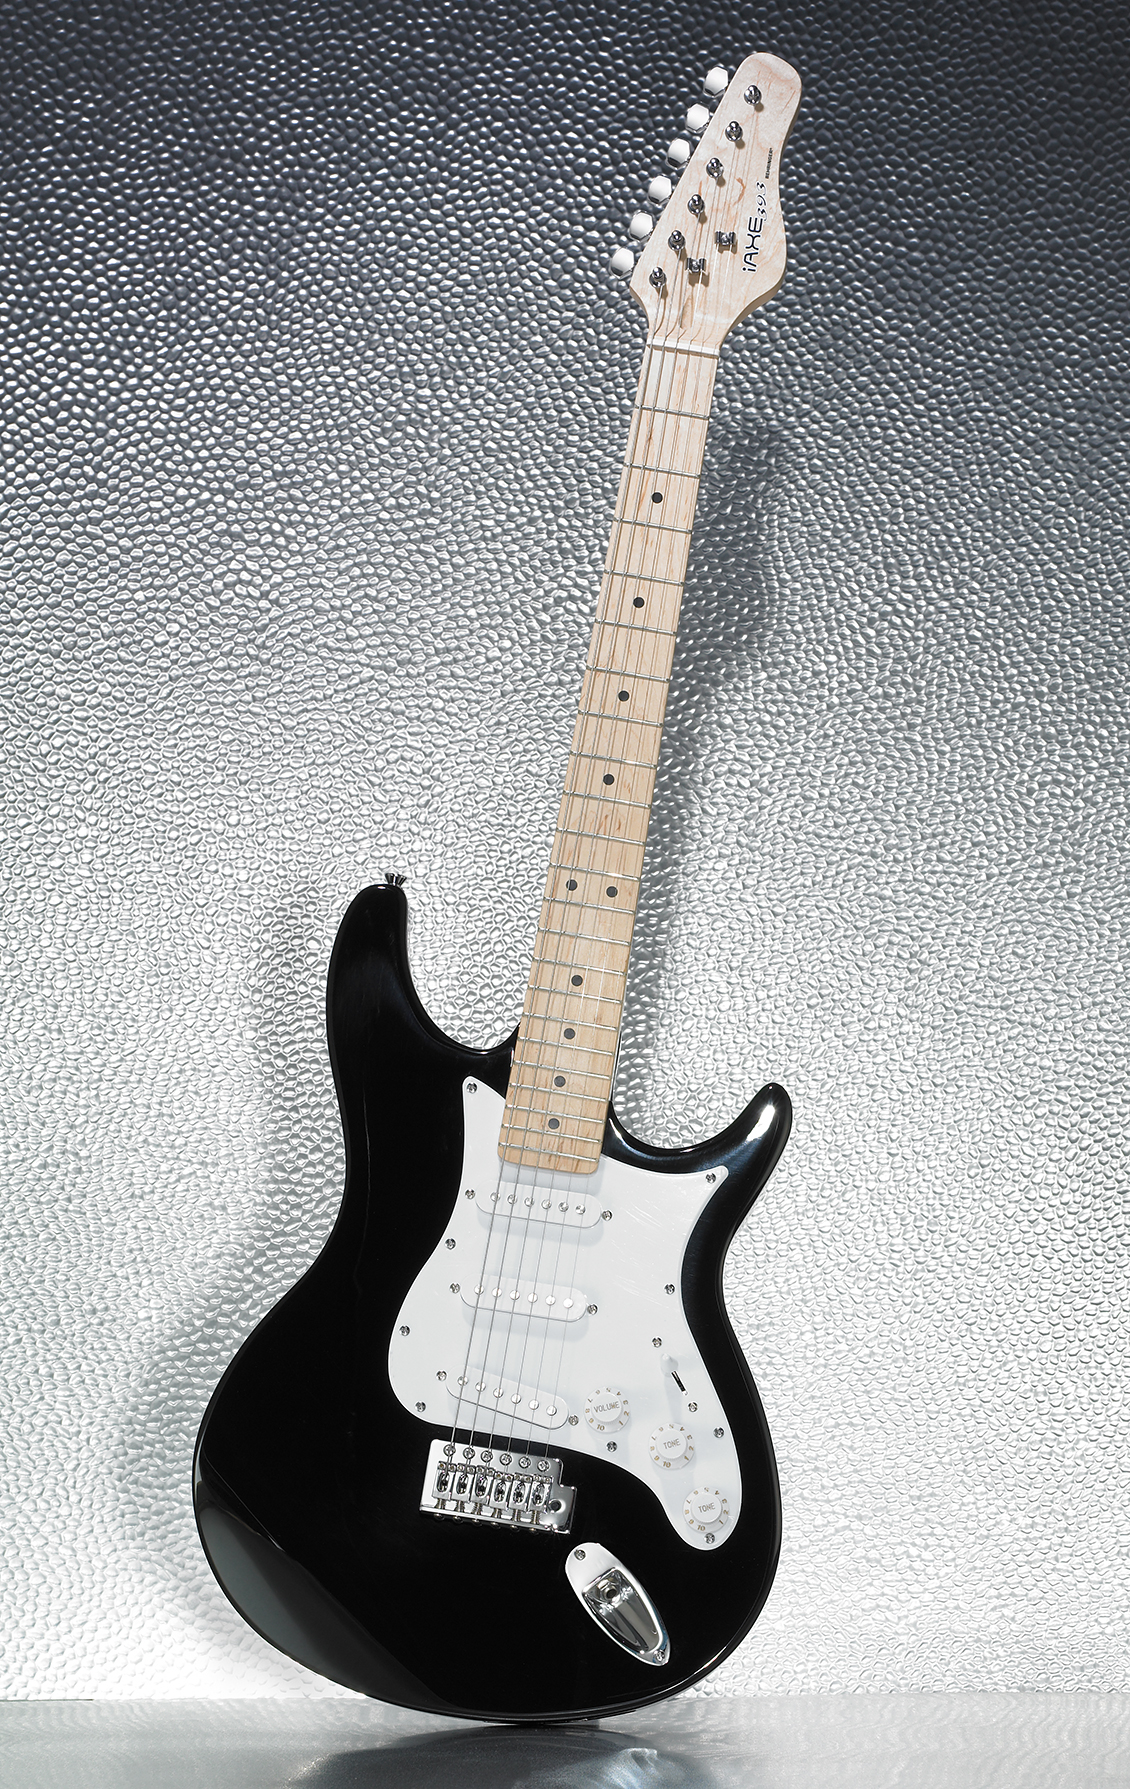 electric guitar art director for product advertising